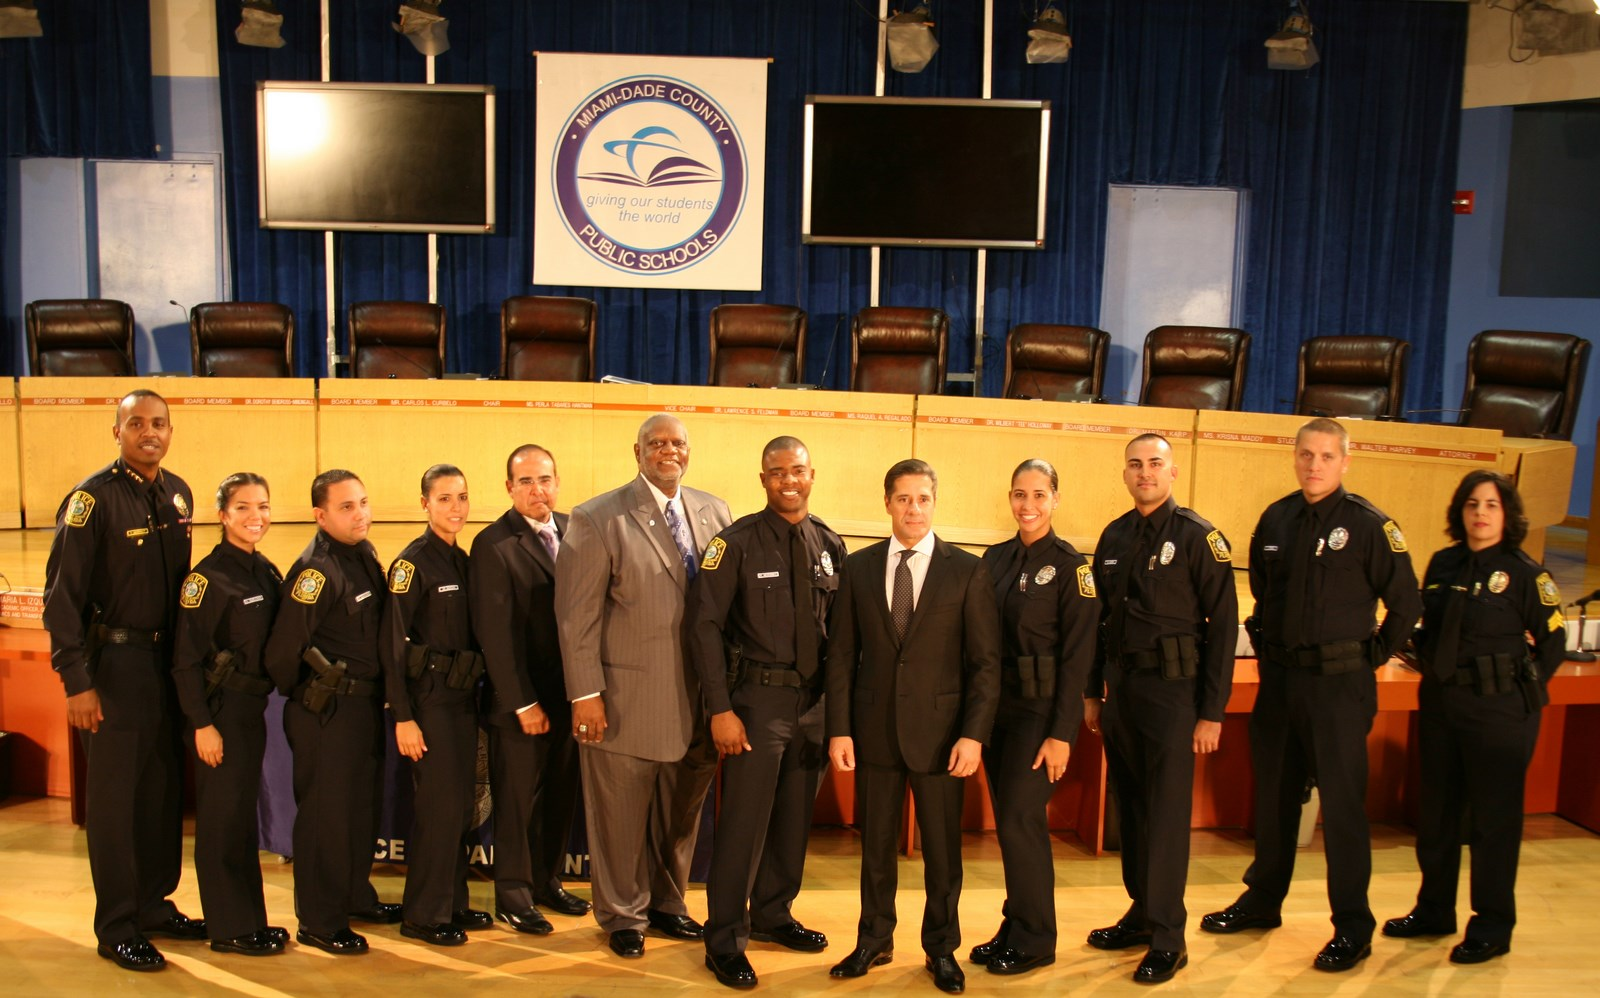 Swearing-In Ceremony Welcomes 7 Police Officers and Promotes 1 to Sergeant